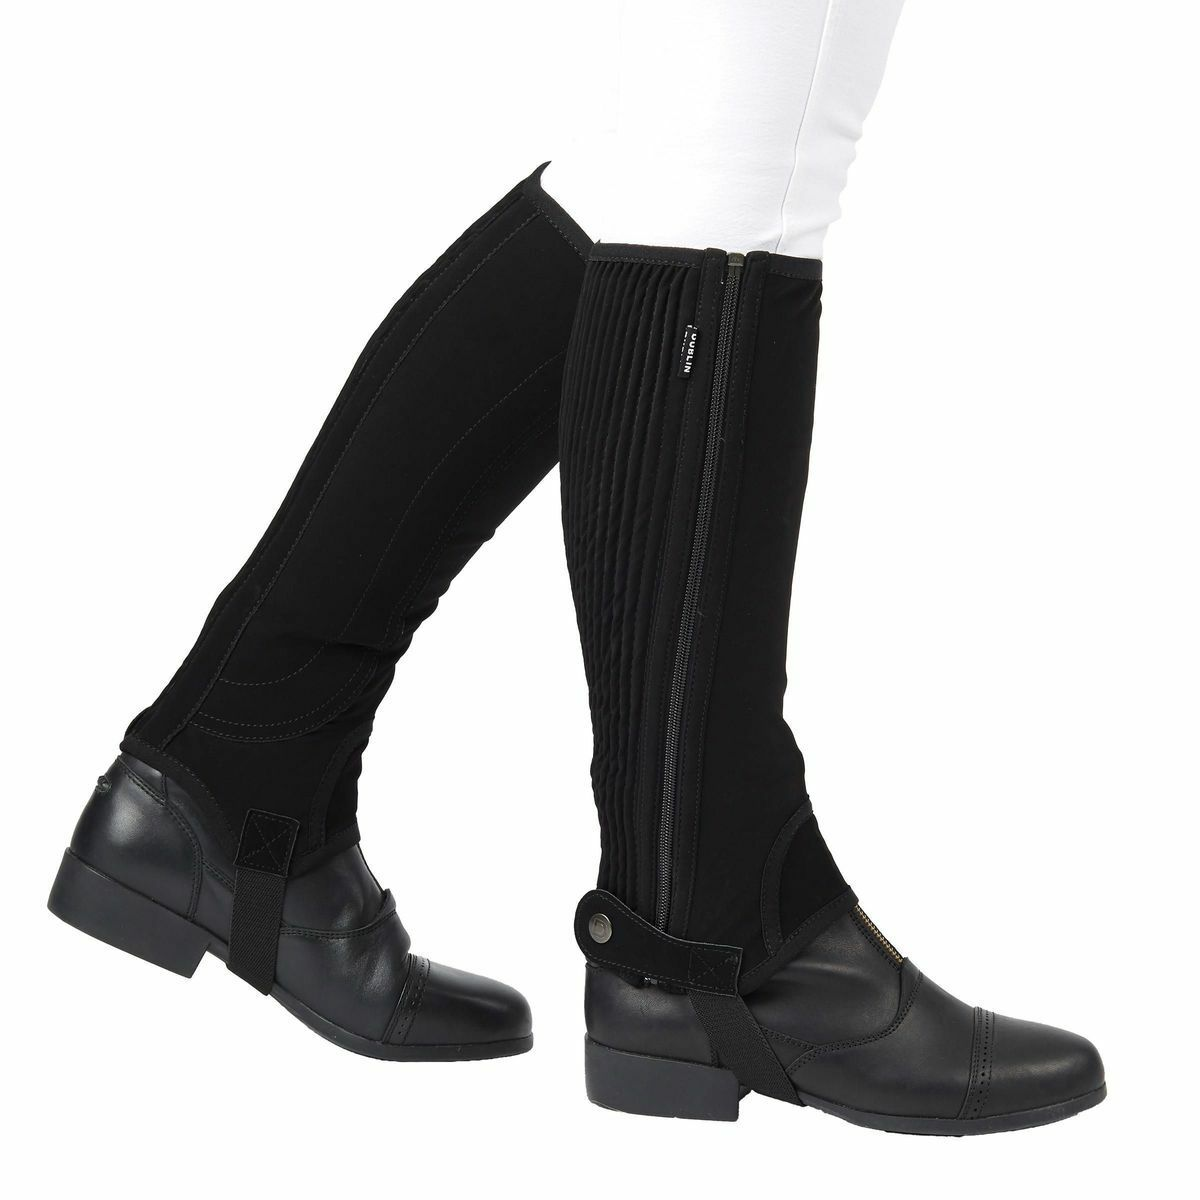 Dublin Easy-Care Half Chaps II with Ribbed Elastic Calf Synthetic Suede